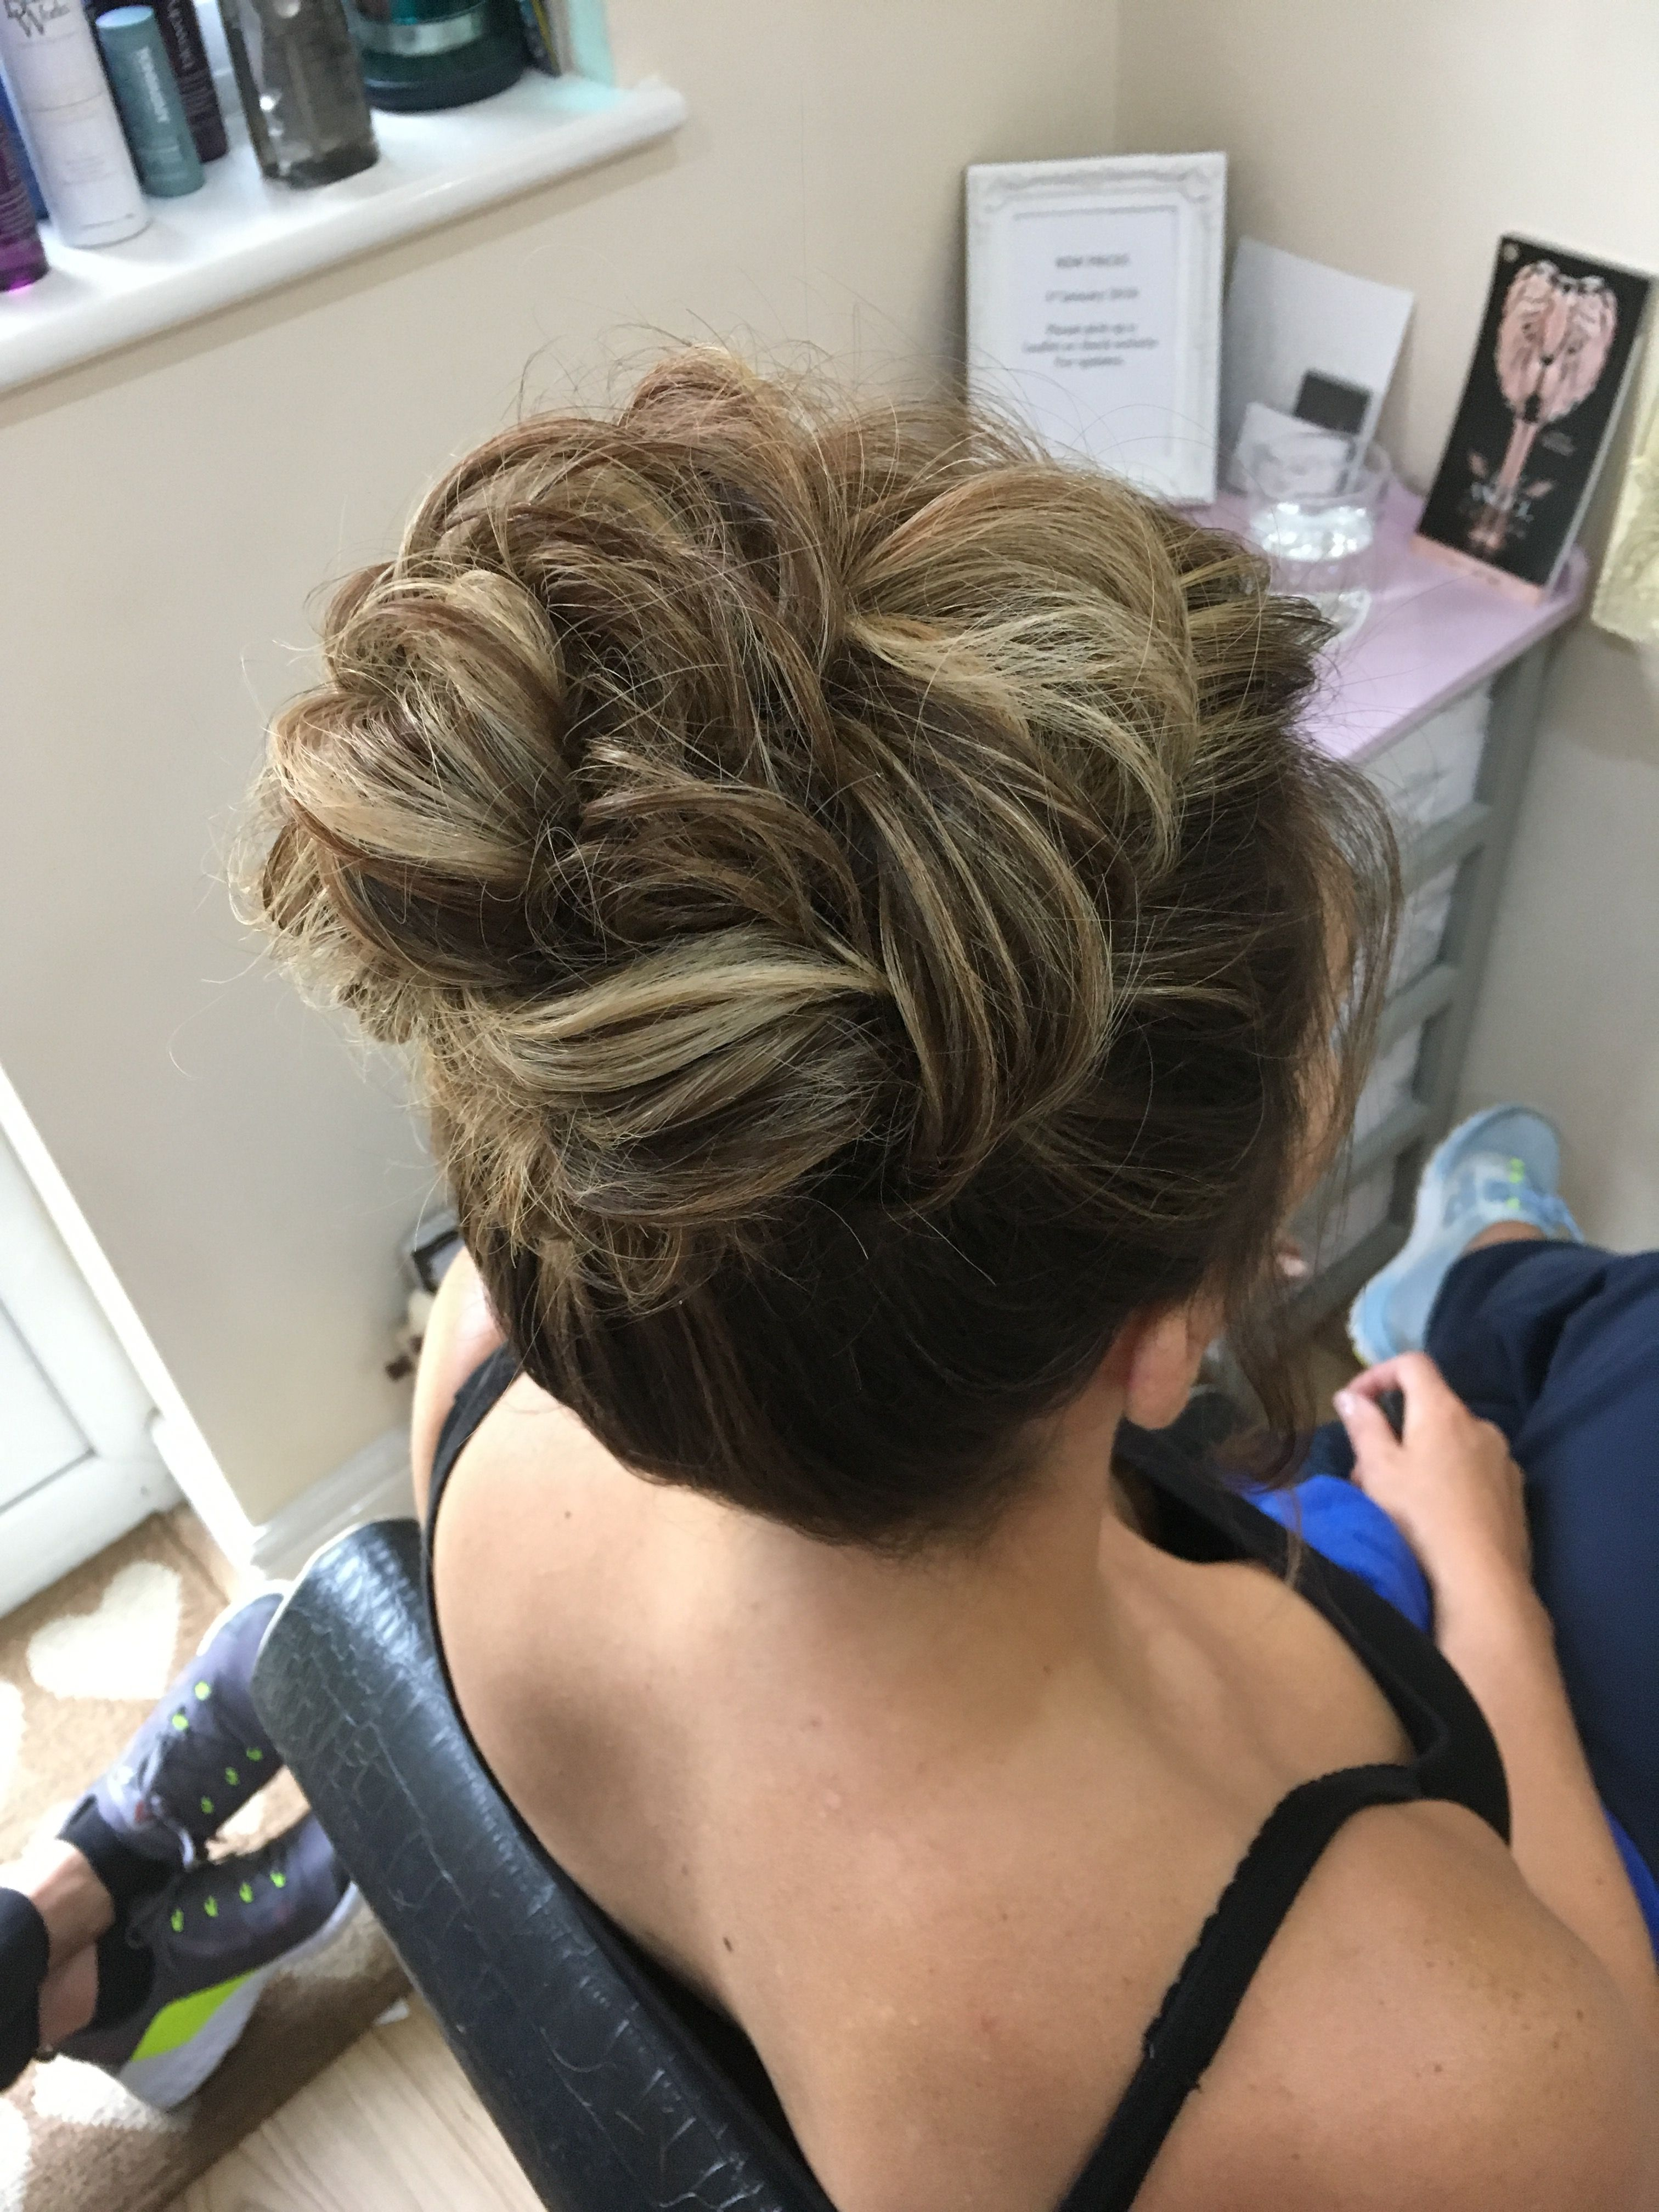 soft high updo piled high undone look for wedding guest